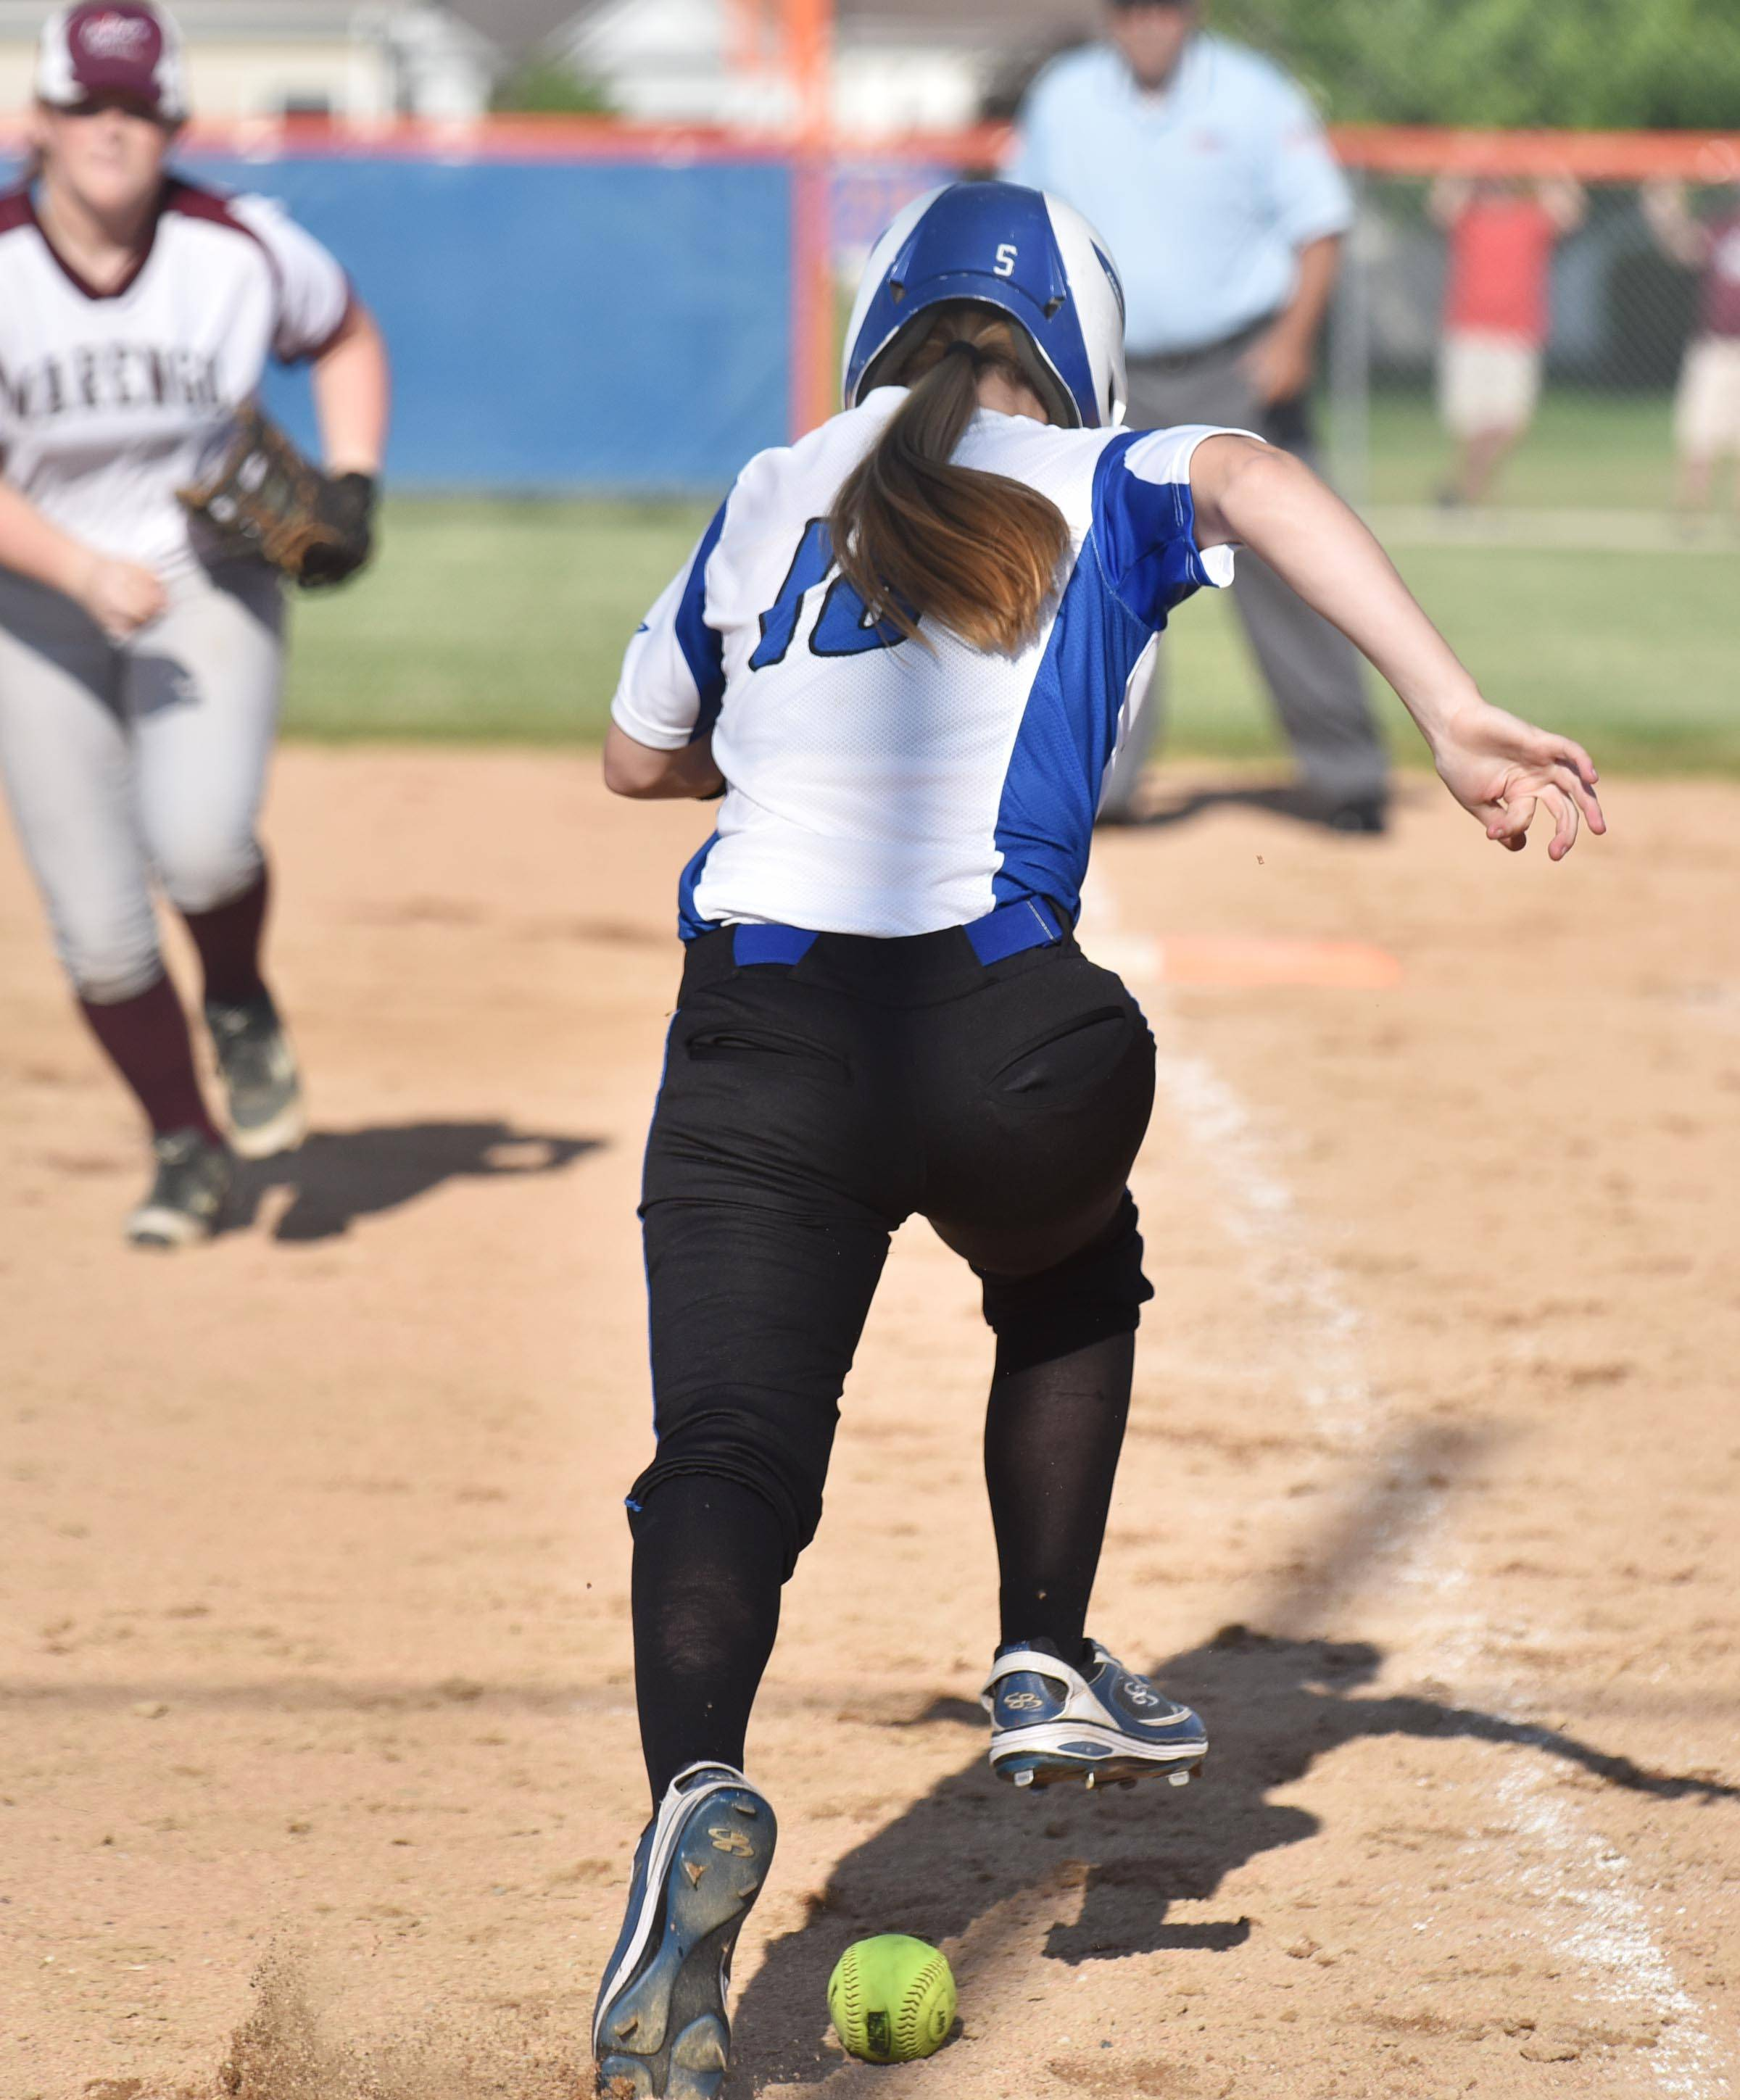 Burlington Central's Sarah Kinney steps over her bunted ball as she safely scampers to first base against Marengo Wednesday in the Genoa-Kingston sectional game.